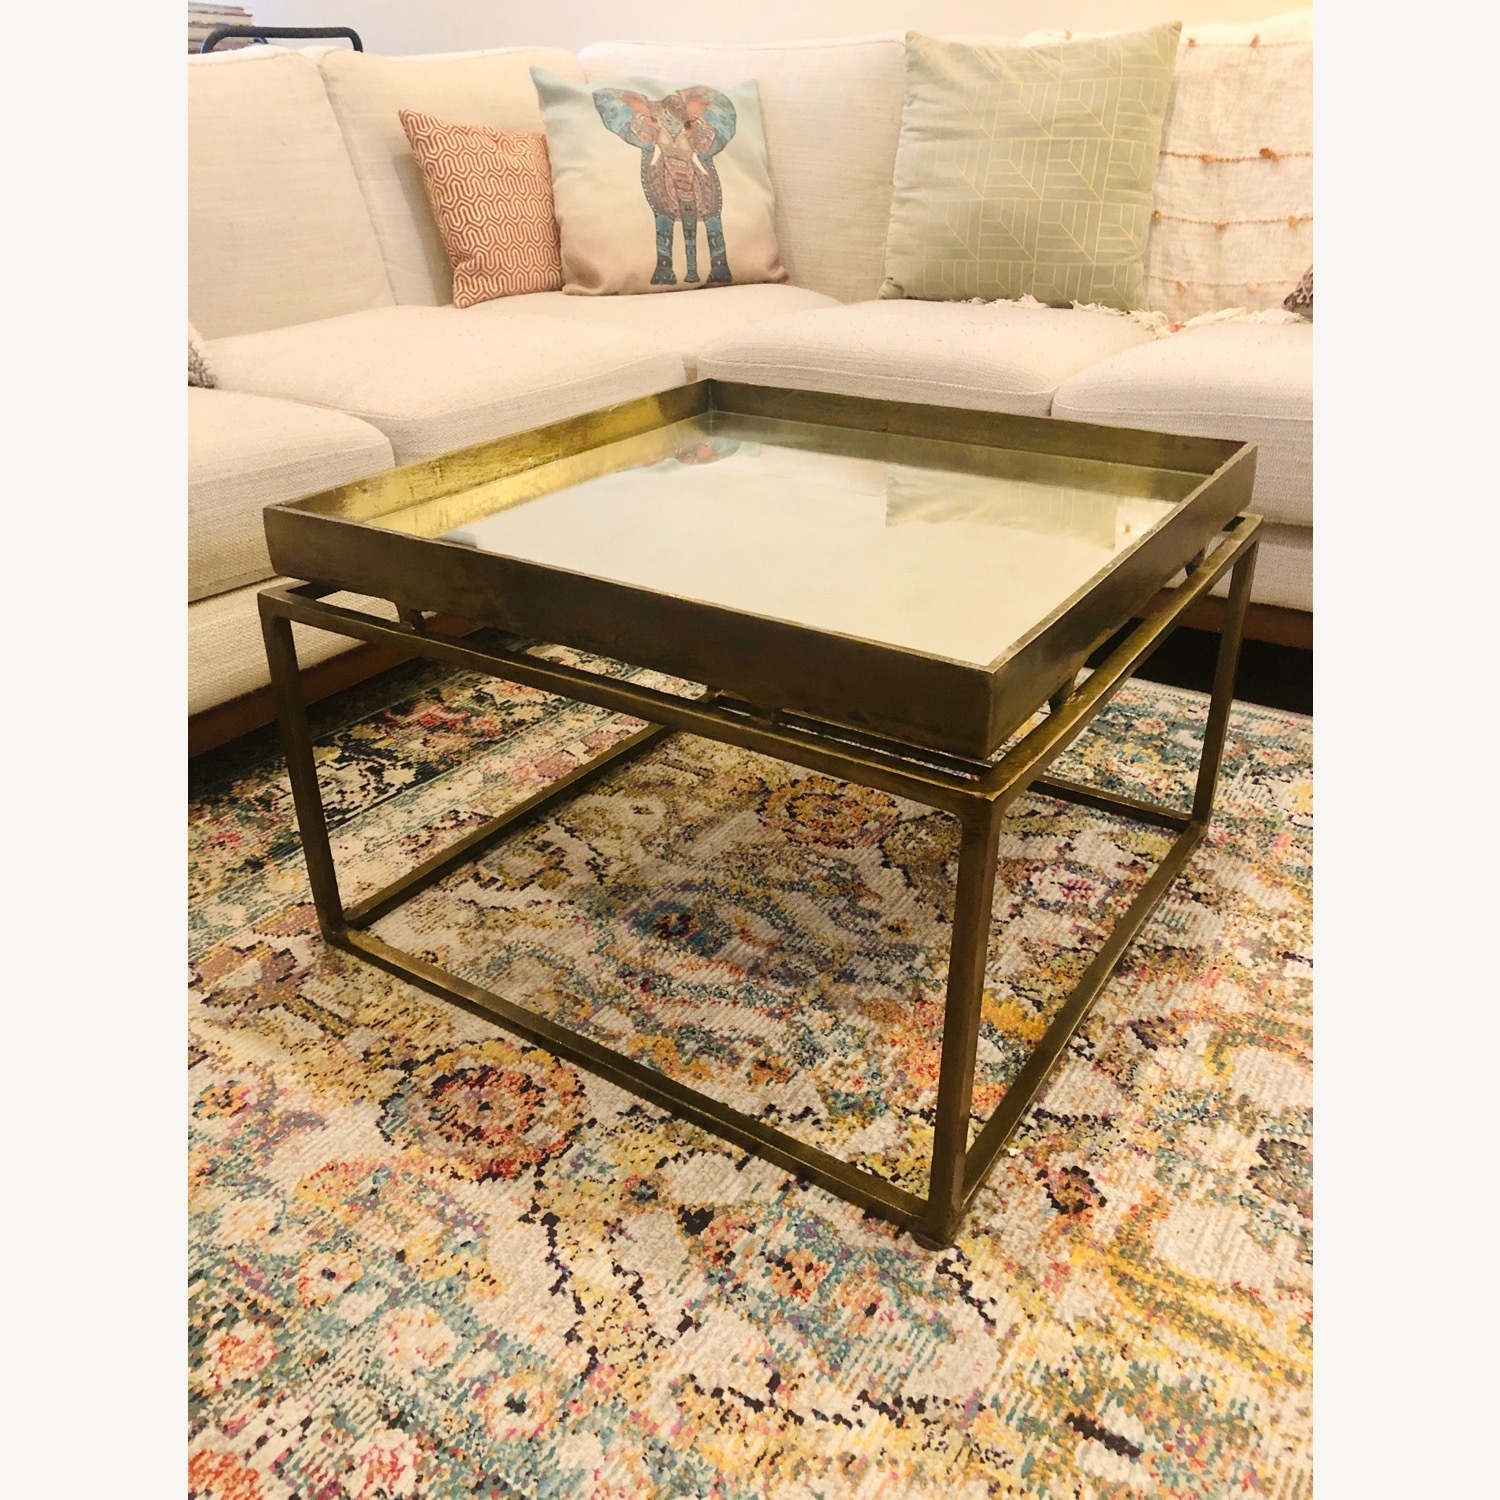 Crate & Barrel Antique Brass Bunching Table - image-1